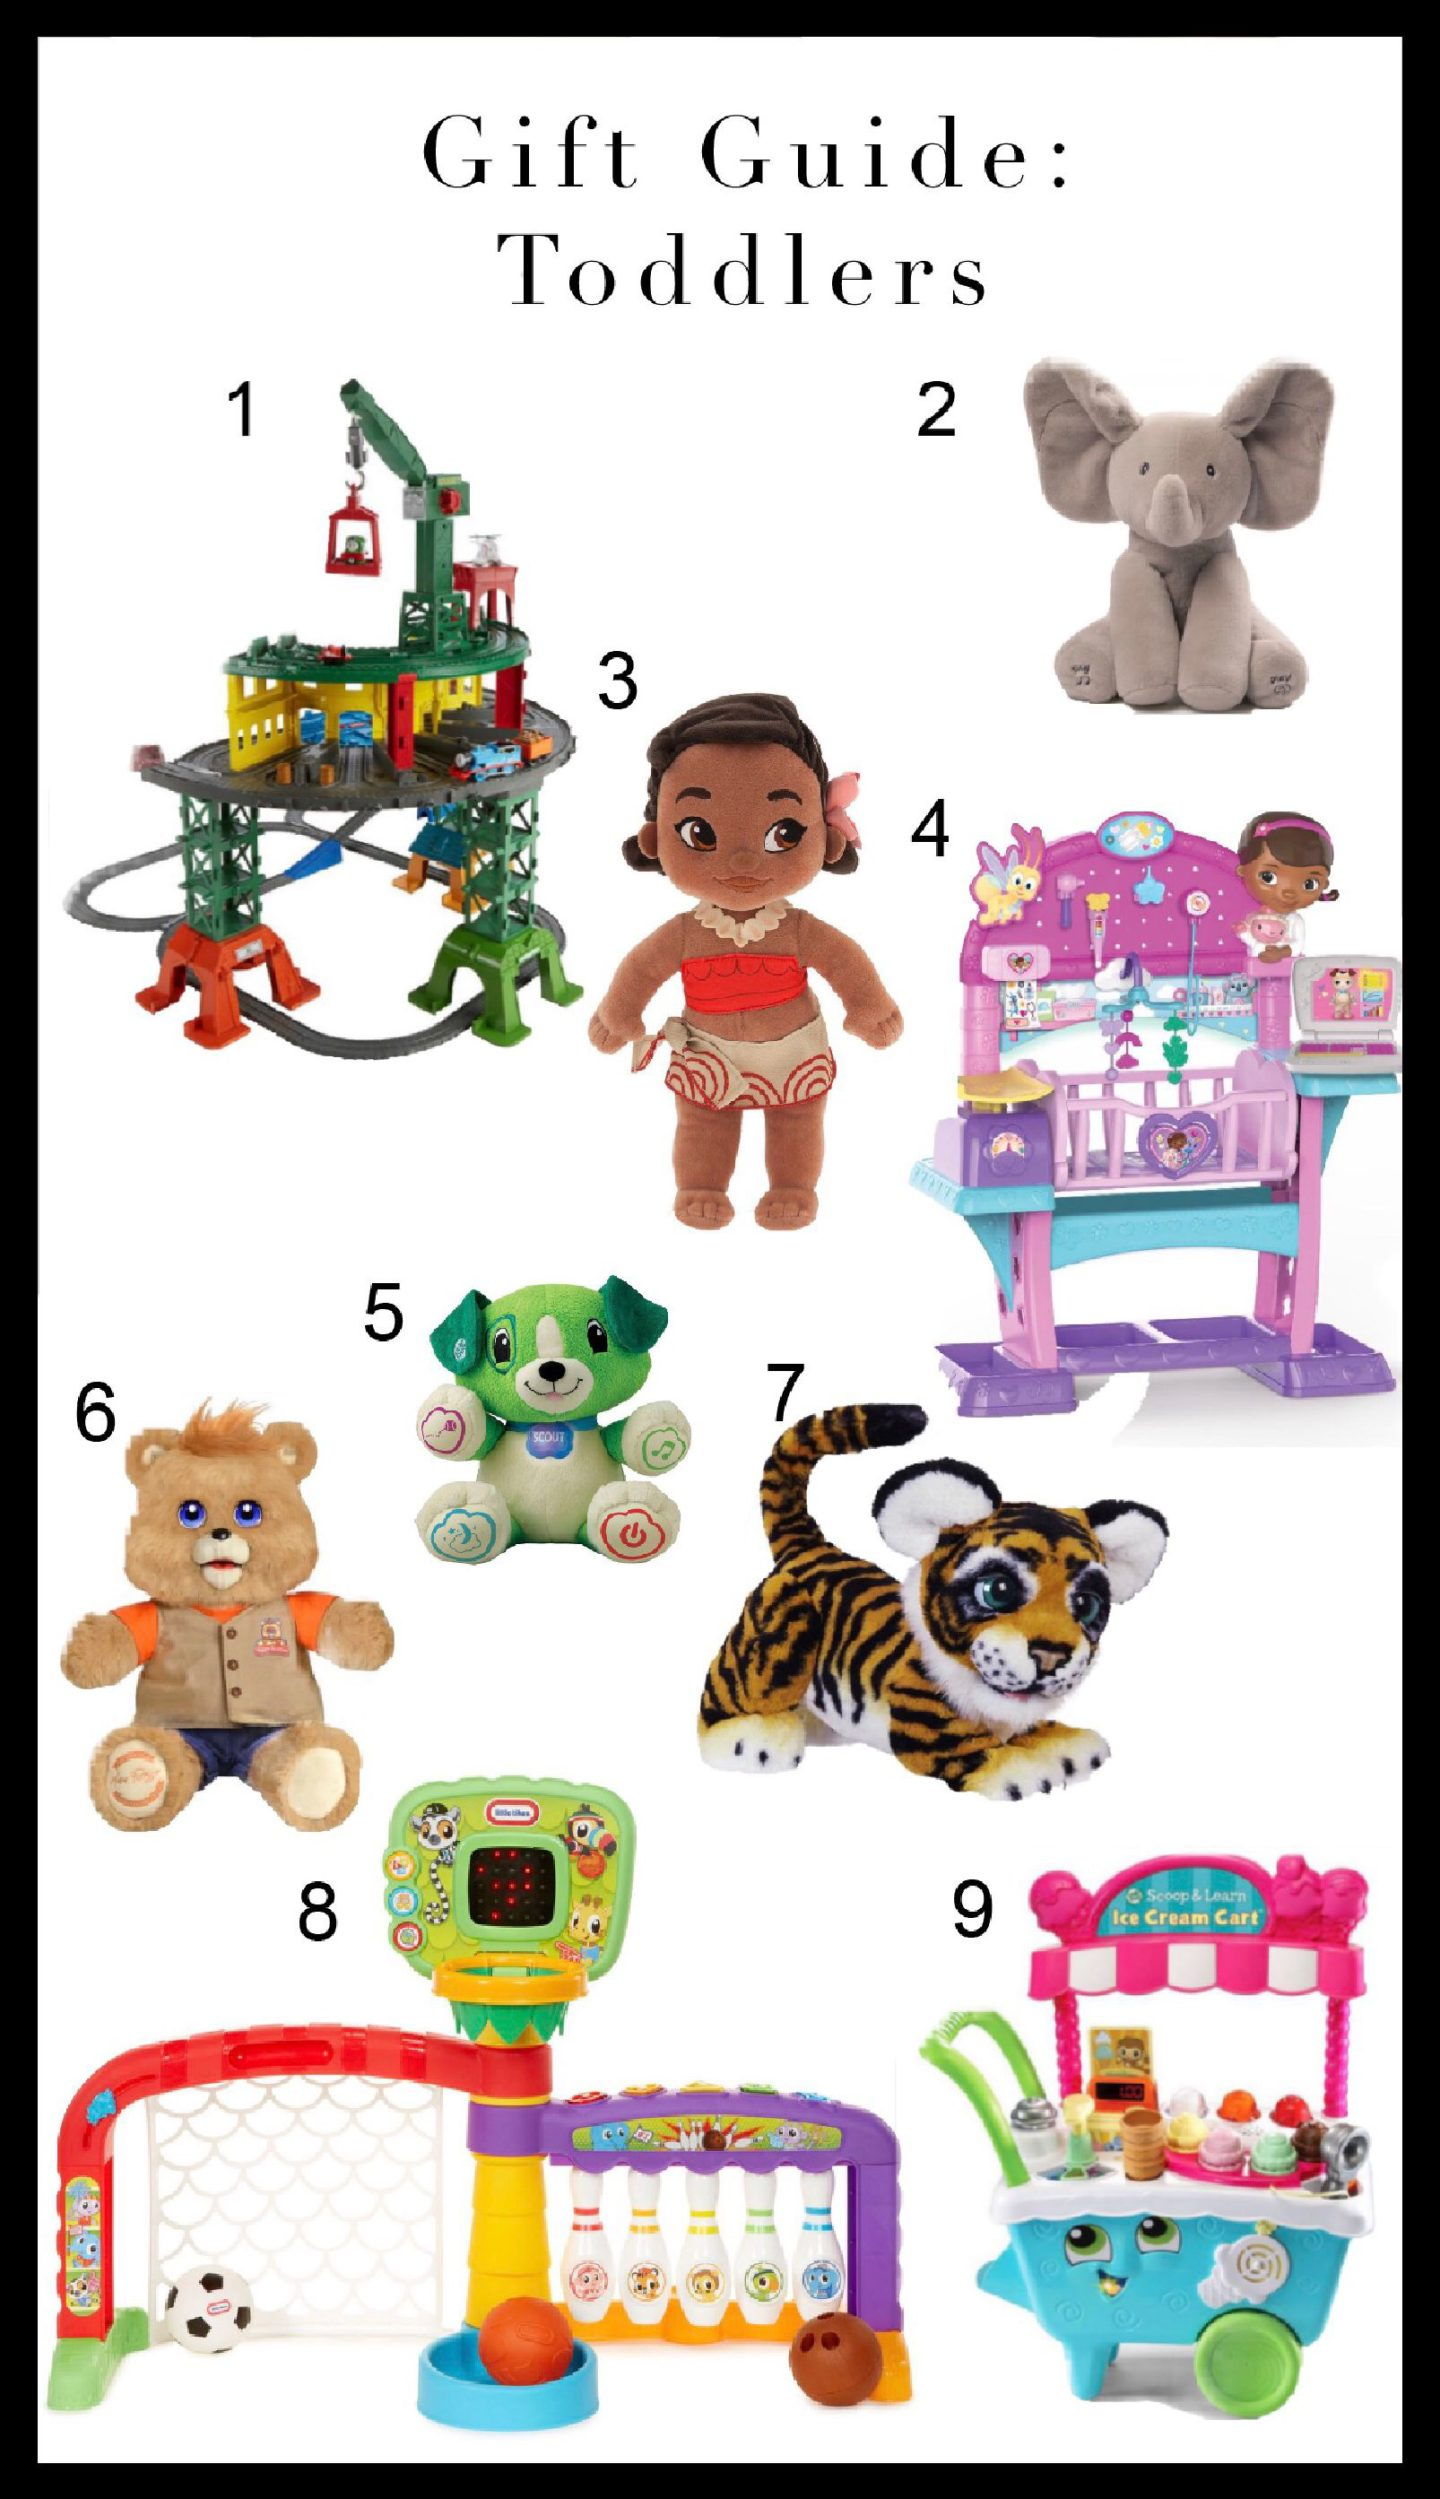 Gift Guide: Toddlers